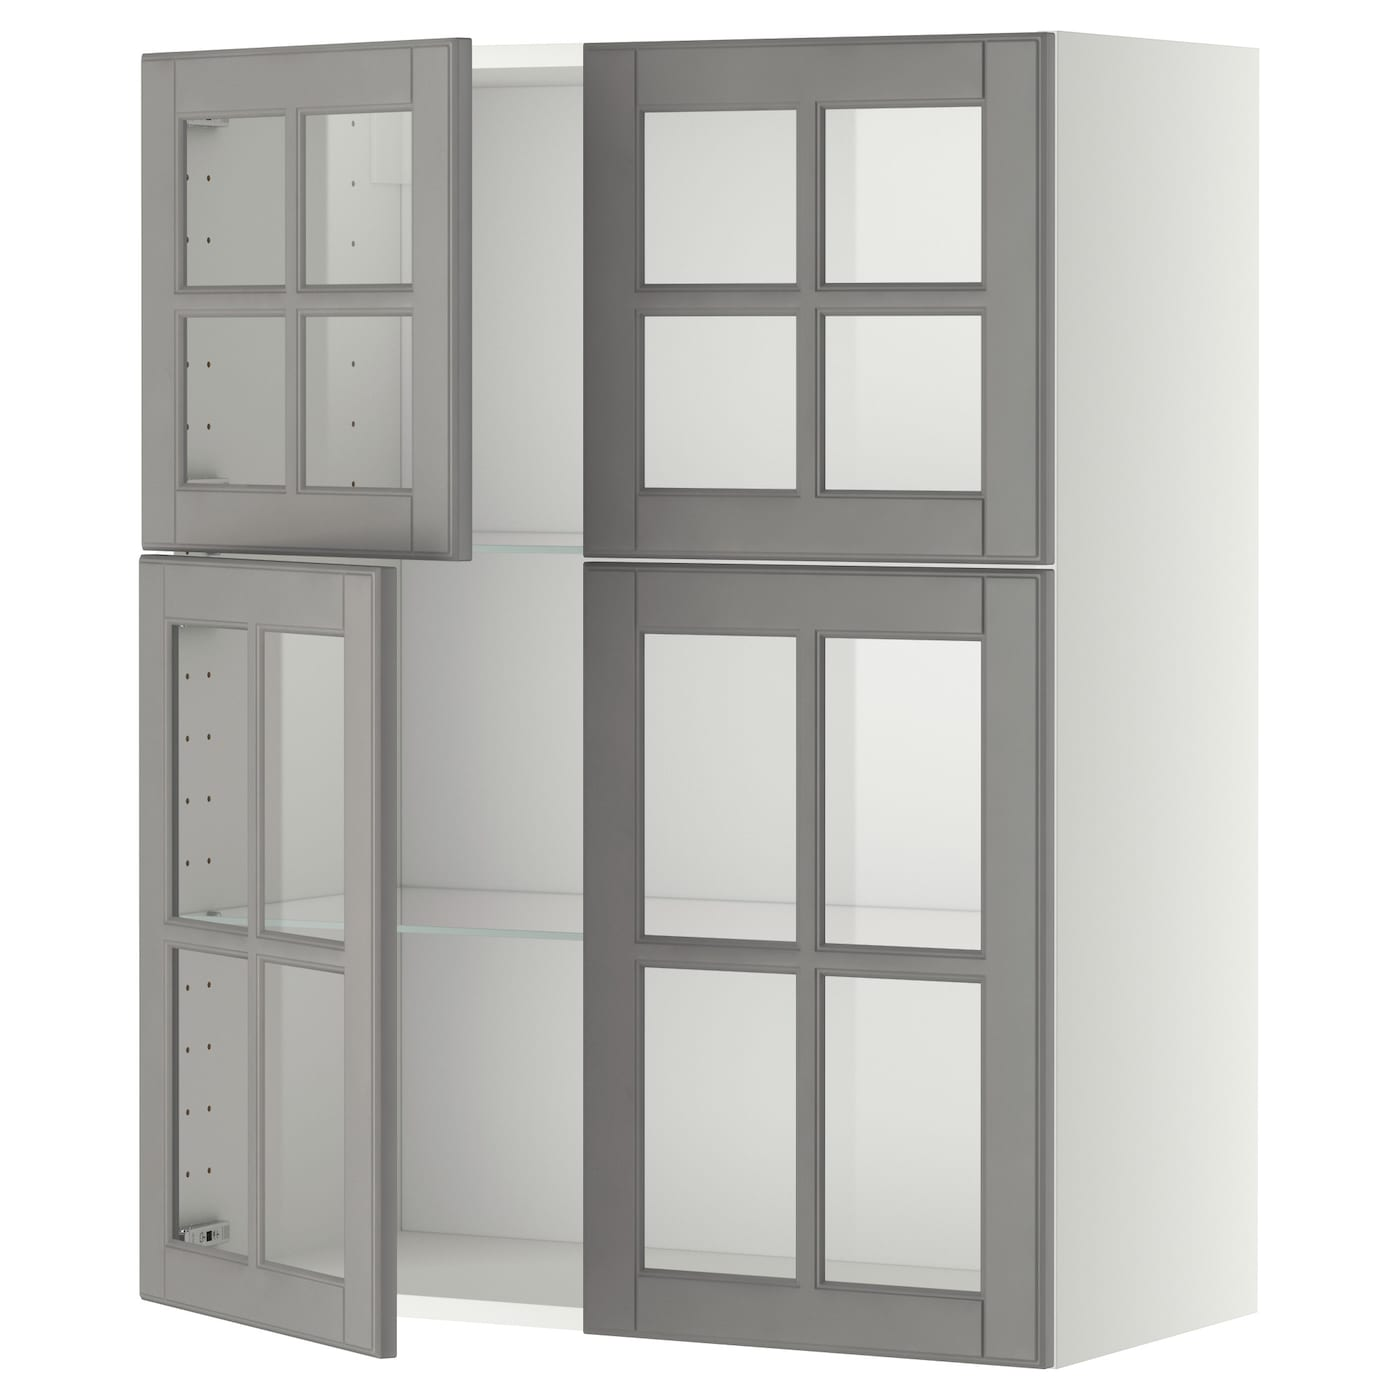 Wall Cabinet W Shelves 4 Glass Drs Metod White Bodbyn Grey